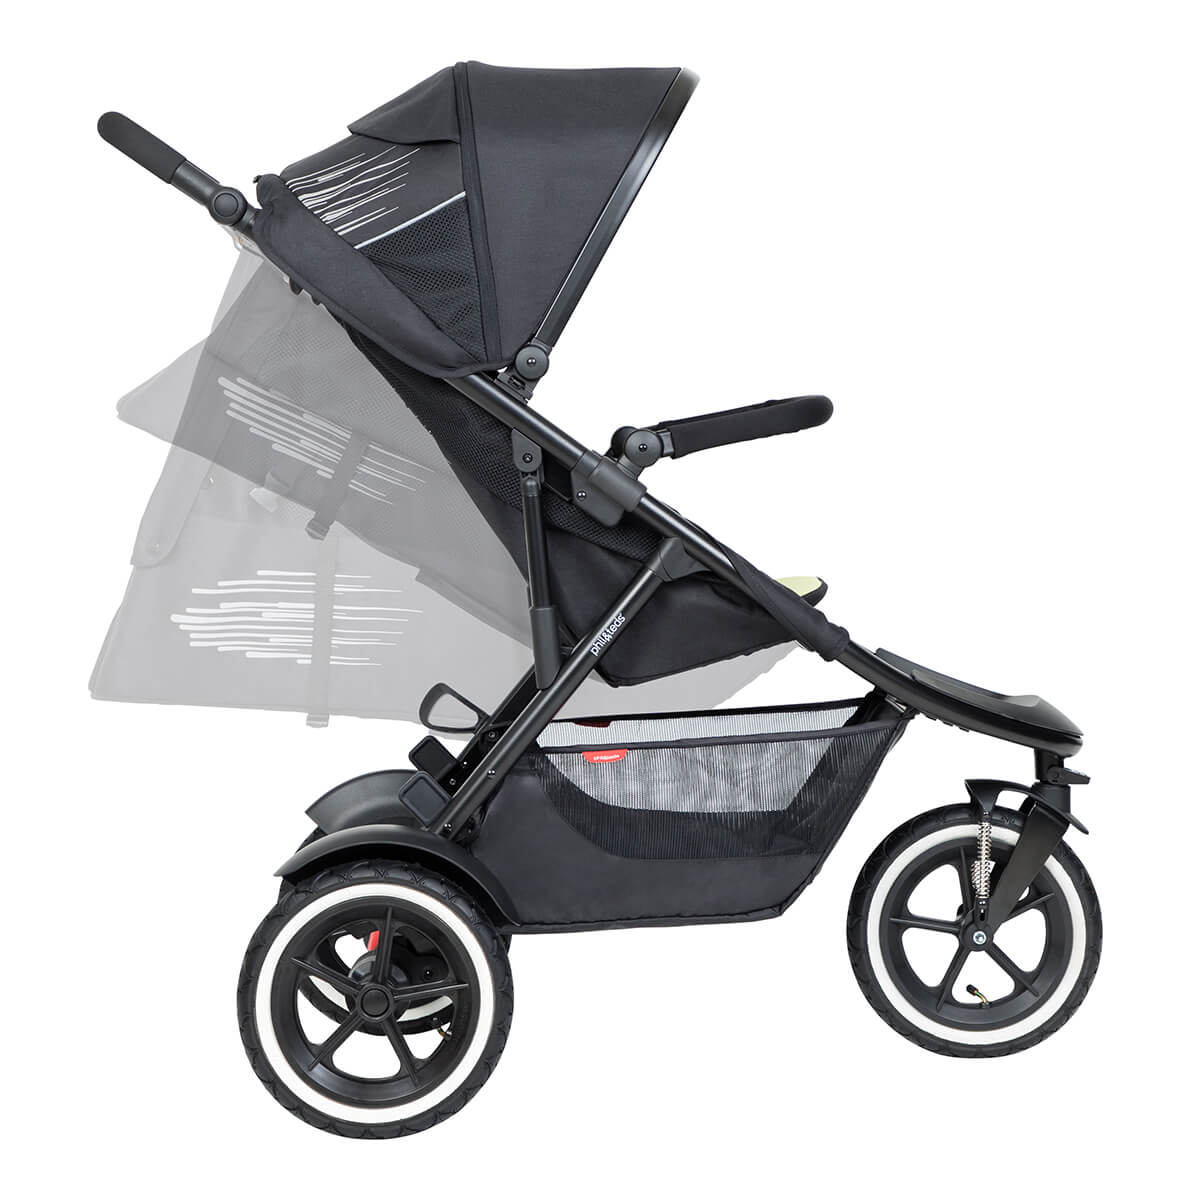 https://cdn.accentuate.io/4509866885217/19793939267754/philteds-sport-buggy-can-recline-in-multiple-angles-including-full-recline-for-newborn-baby-v1626485292839.jpg?1200x1200